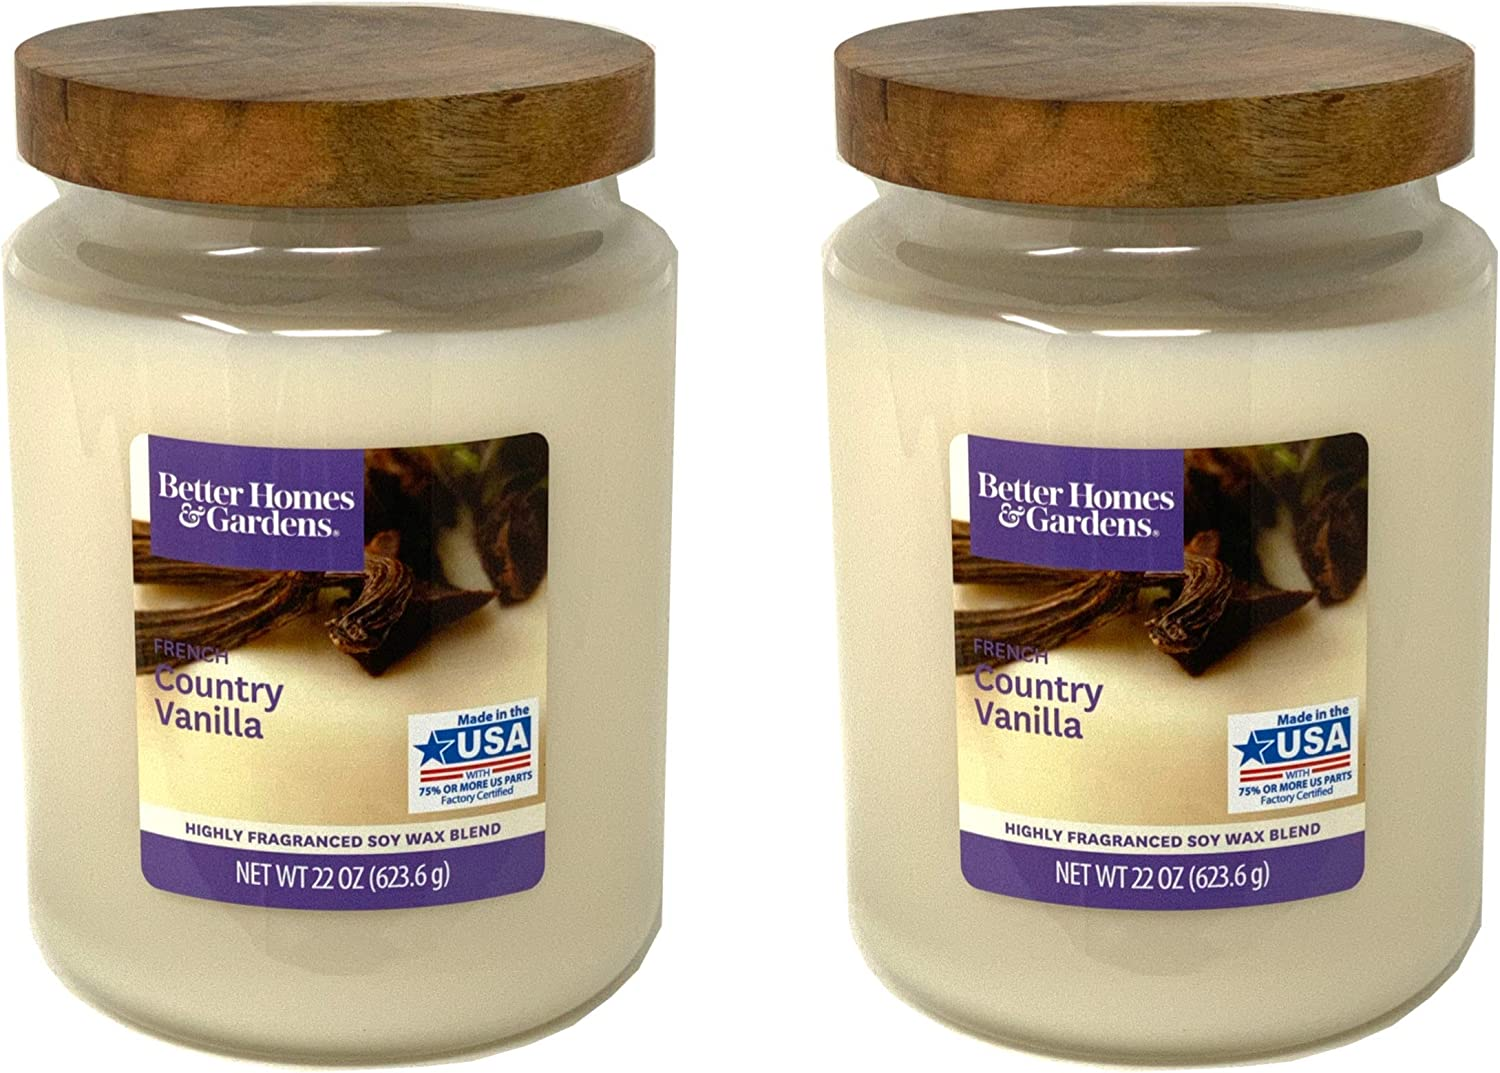 Better Homes Gardens 22oz Scented Candle, French Country Vanilla 2-Pack